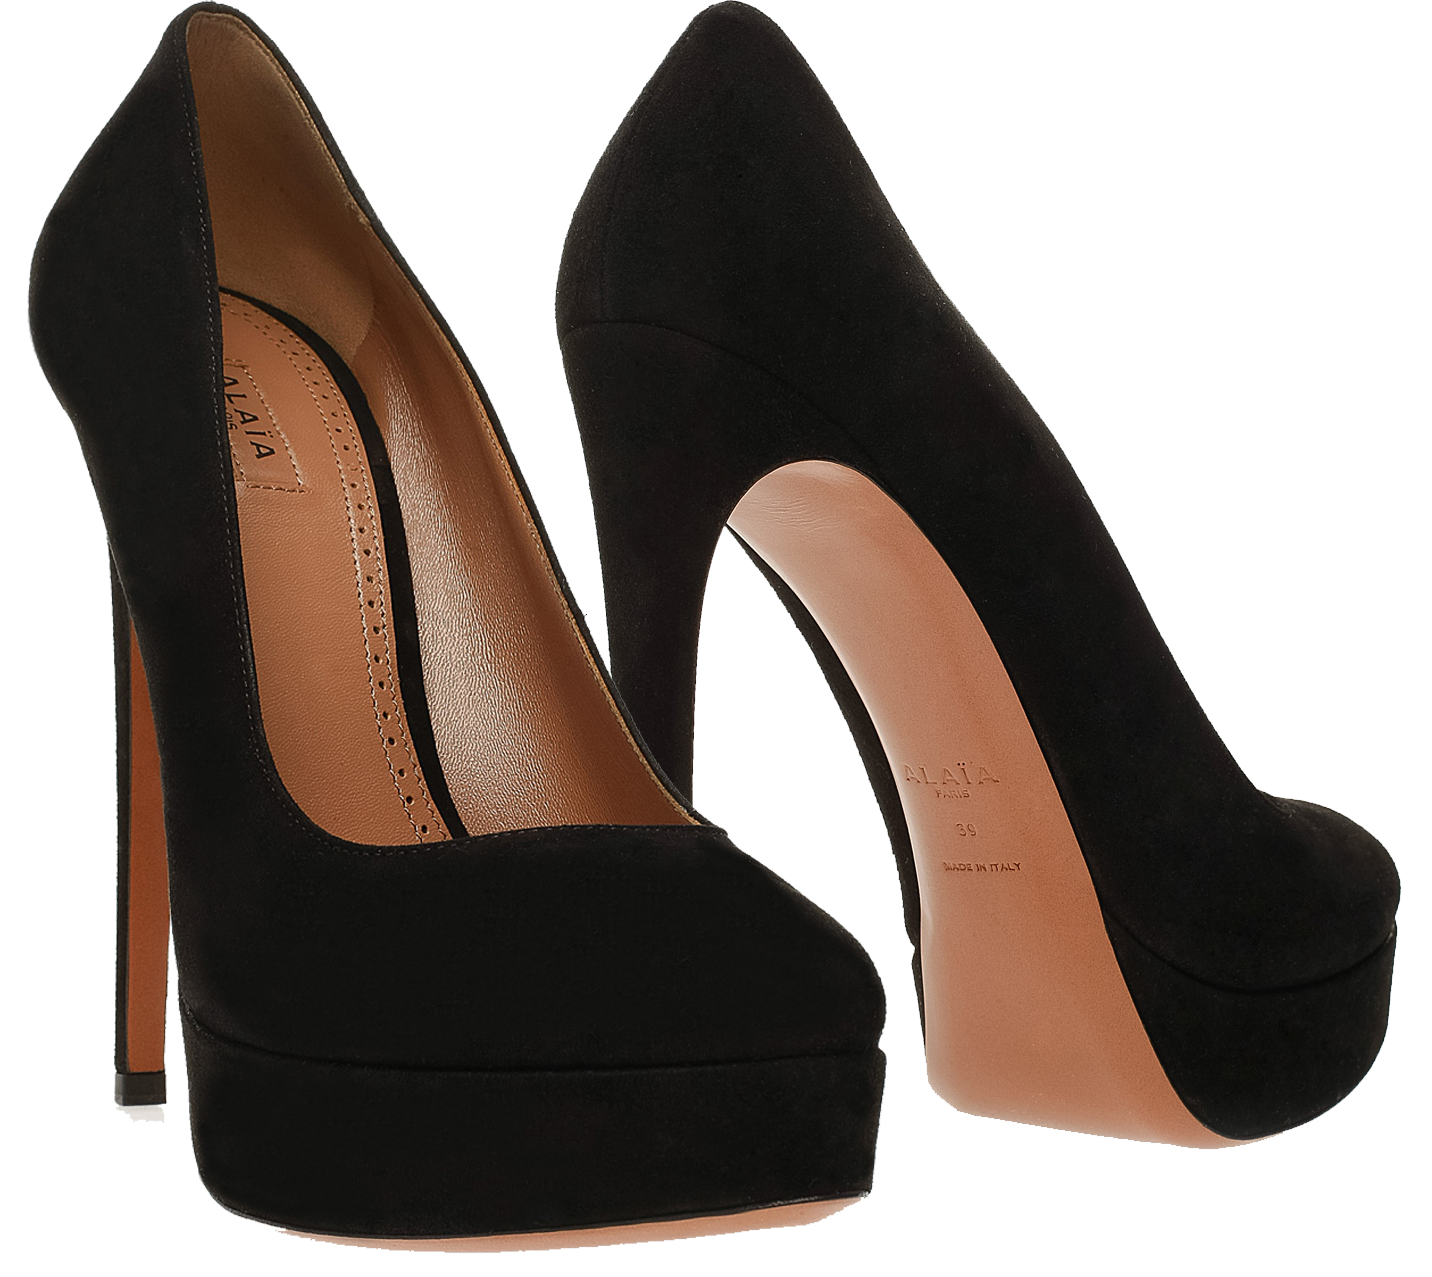 cheap good selling quality free shipping Alaïa Platform Suede Pumps cheap price discount authentic PuLfb3cBW5